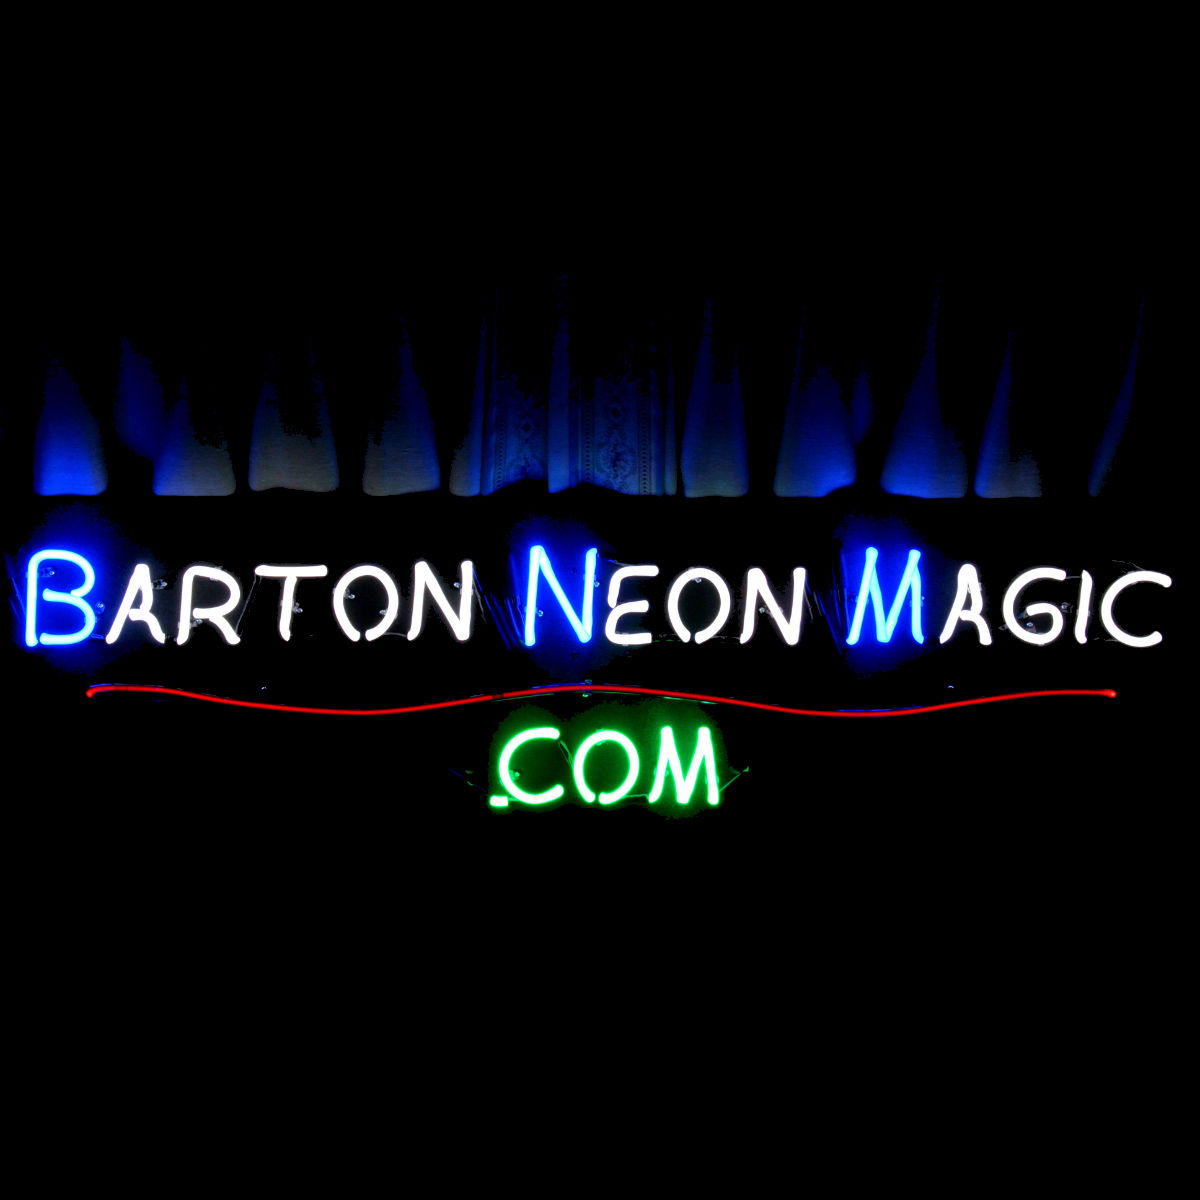 Designer Interior Neon Lighting by John Barton - famous Neon Light Sculptor - USA